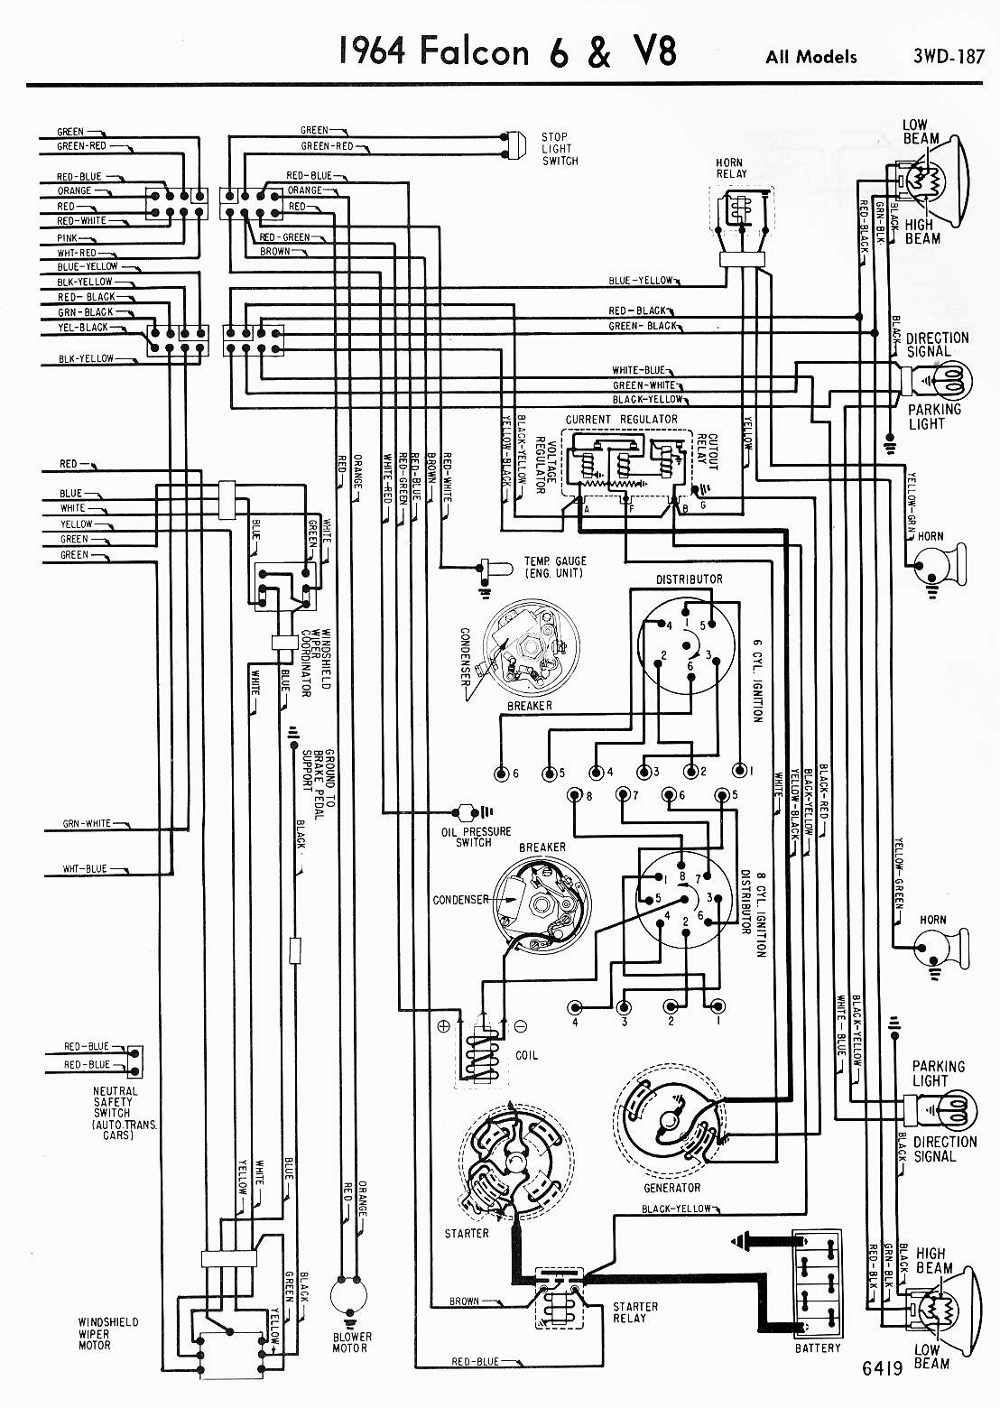 1964 ford falcon wiring diagram wiring diagram 1964 ford falcon wiring diagram